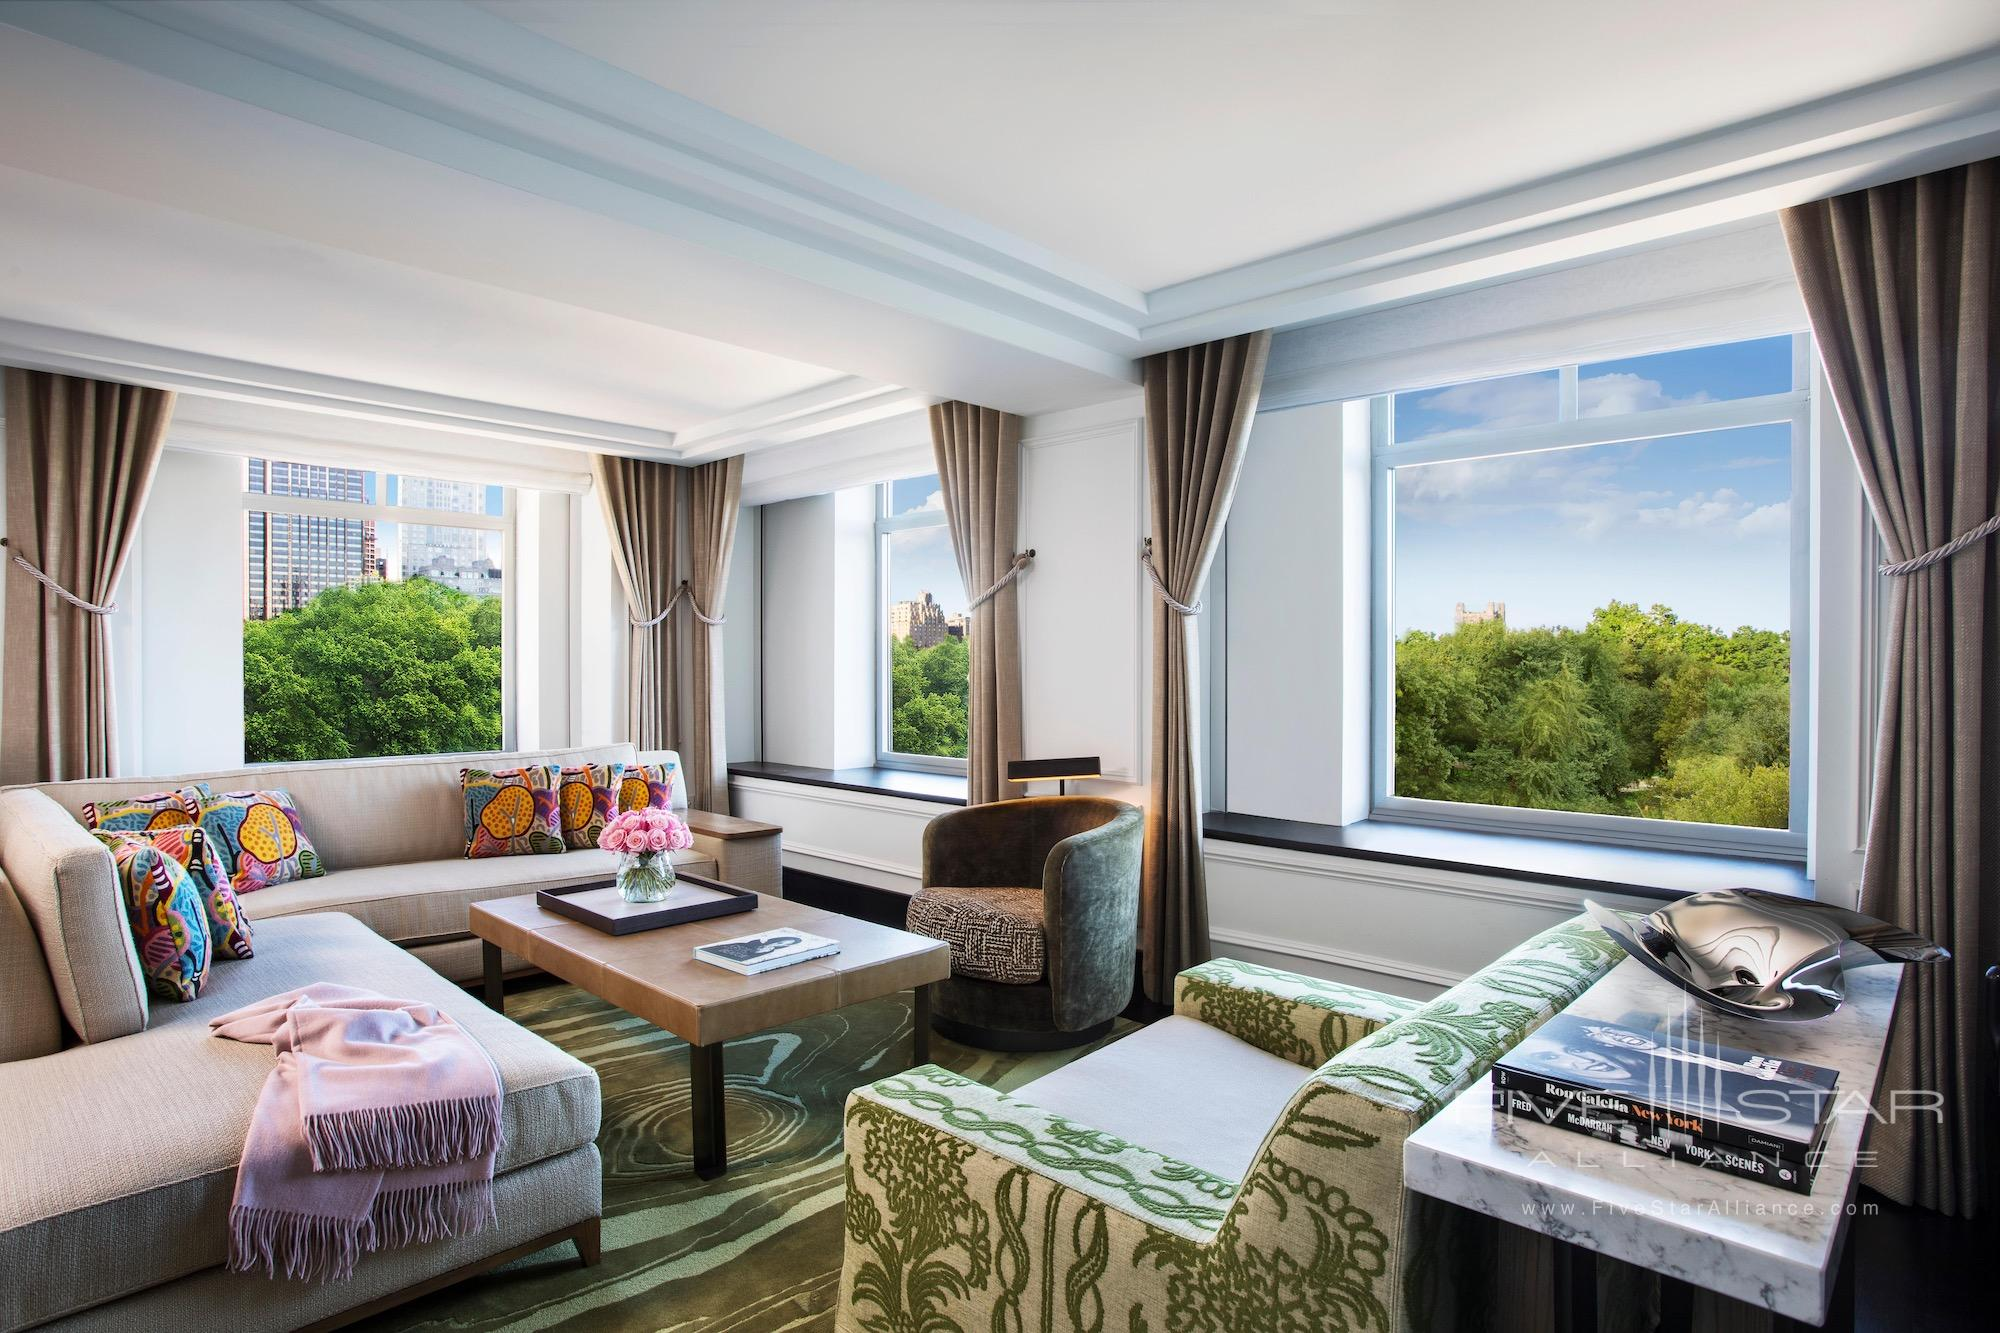 The Ritz-Carlton New York Central Park Presidential Suite